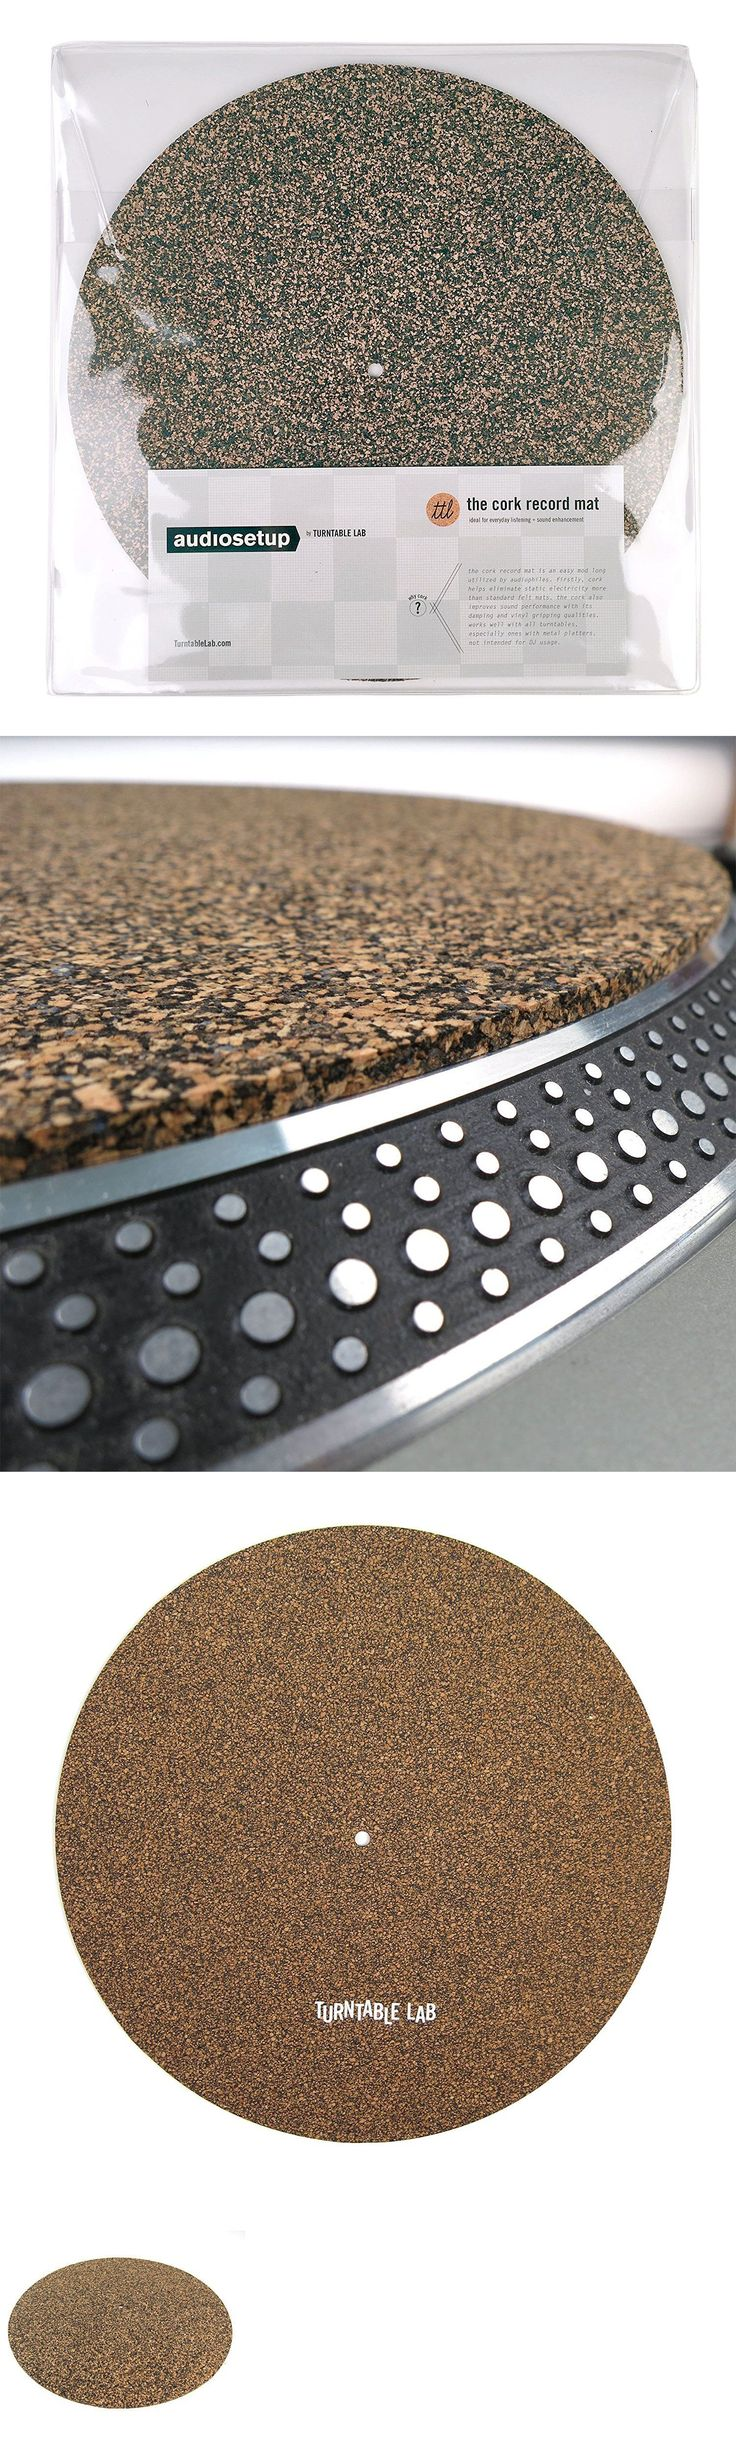 Record Player Turntable Parts: New Turntable Lab: Cork And Rubber Record Mat Free Shipping BUY IT NOW ONLY: $49.95